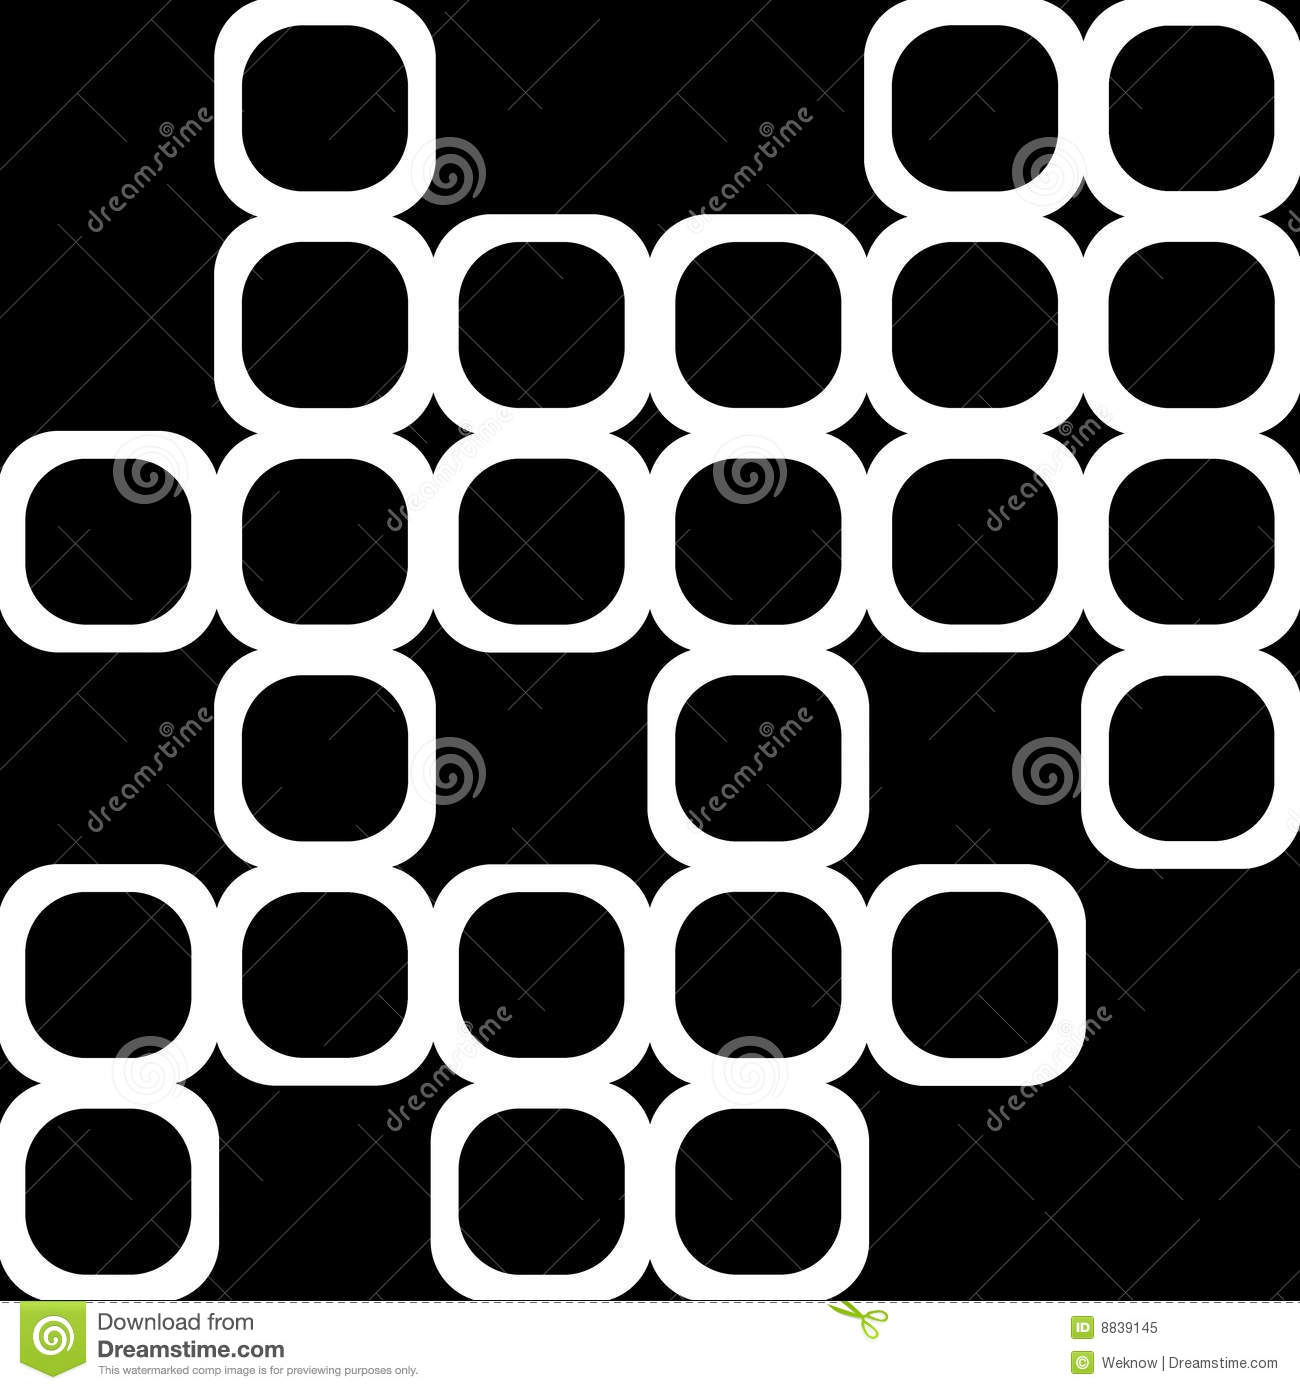 Black and white shapes royalty free stock photo image for Black and white shapes